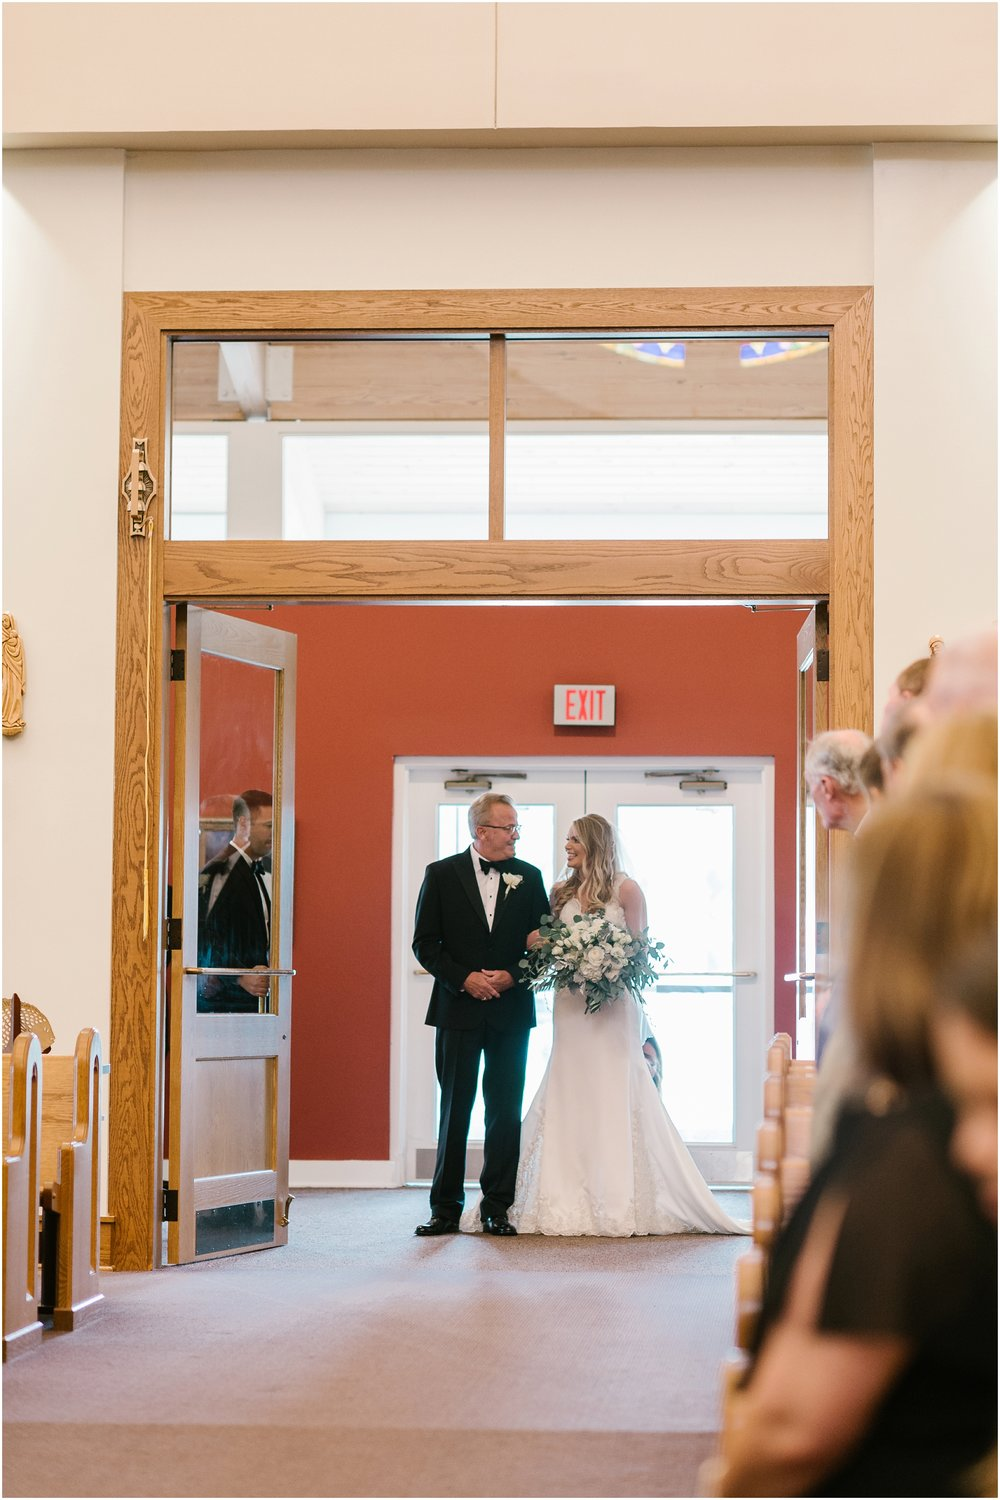 Rebecca_Shehorn_Photography_Indianapolis_Wedding_Photographer_8933.jpg